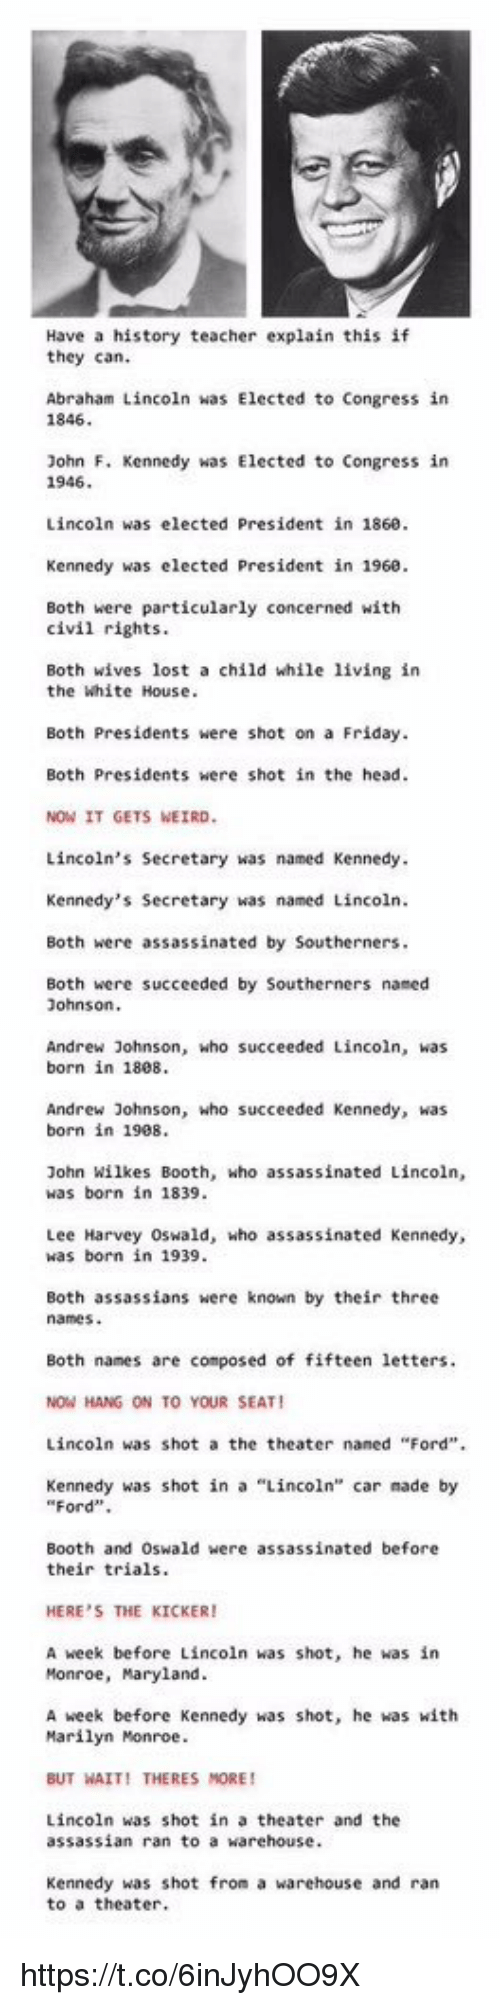 """Lee Harvey Oswald: Have a history teacher explain this if  they can.  Abraham Lincoln was Elected to Congress in  1846  ohn F. Kennedy was Elected to Congress in  1946  Lincoln was elected President in 1860  Kennedy was elected President in 1960  Both were particularly concerned with  civil rights  Both wives lost a child while living in  the White House  Both Presidents were shot on a Friday  Both Presidents were shot in the head  NOW IT GETS WEIRD  Lincoln's Secretary was named Kennedy  Kennedy's Secretary was named Lincoln  Both were assassinated by Southerners  Both were succeeded by Southerners named  ohnsorn  Andrew Johnson, who succeeded Lincoln, was  born in 1808  Andrew Johnson, who succeeded Kennedy, was  born in 1908  John wilkes Booth, who assassinated Lincoln,  was born in 1839  Lee Harvey Oswald, who assassinated Kennedy,  was born in 1939  Both assassians were known by their three  Both names are composed of fifteen letters  NOW HANG ON TO YOUR SEAT!  Lincoln was shot a the theater naned """"Ford"""".  Kennedy was shot in a """"Lincoln car made by  """"Ford""""  Booth and Oswald were assassinated before  their trials  HERE'S THE KICKER!  A week before Lincoln was shot, he was in  Monroe, Maryland  A week before Kennedy was shot, he was with  Marilyn Monroe  BUT WAIT! THERES MORE  Lincoln was shot in a theater and the  assassian ran to a warehouse  Kennedy was shot from a warehouse and ran  to a theater https://t.co/6inJyhOO9X"""